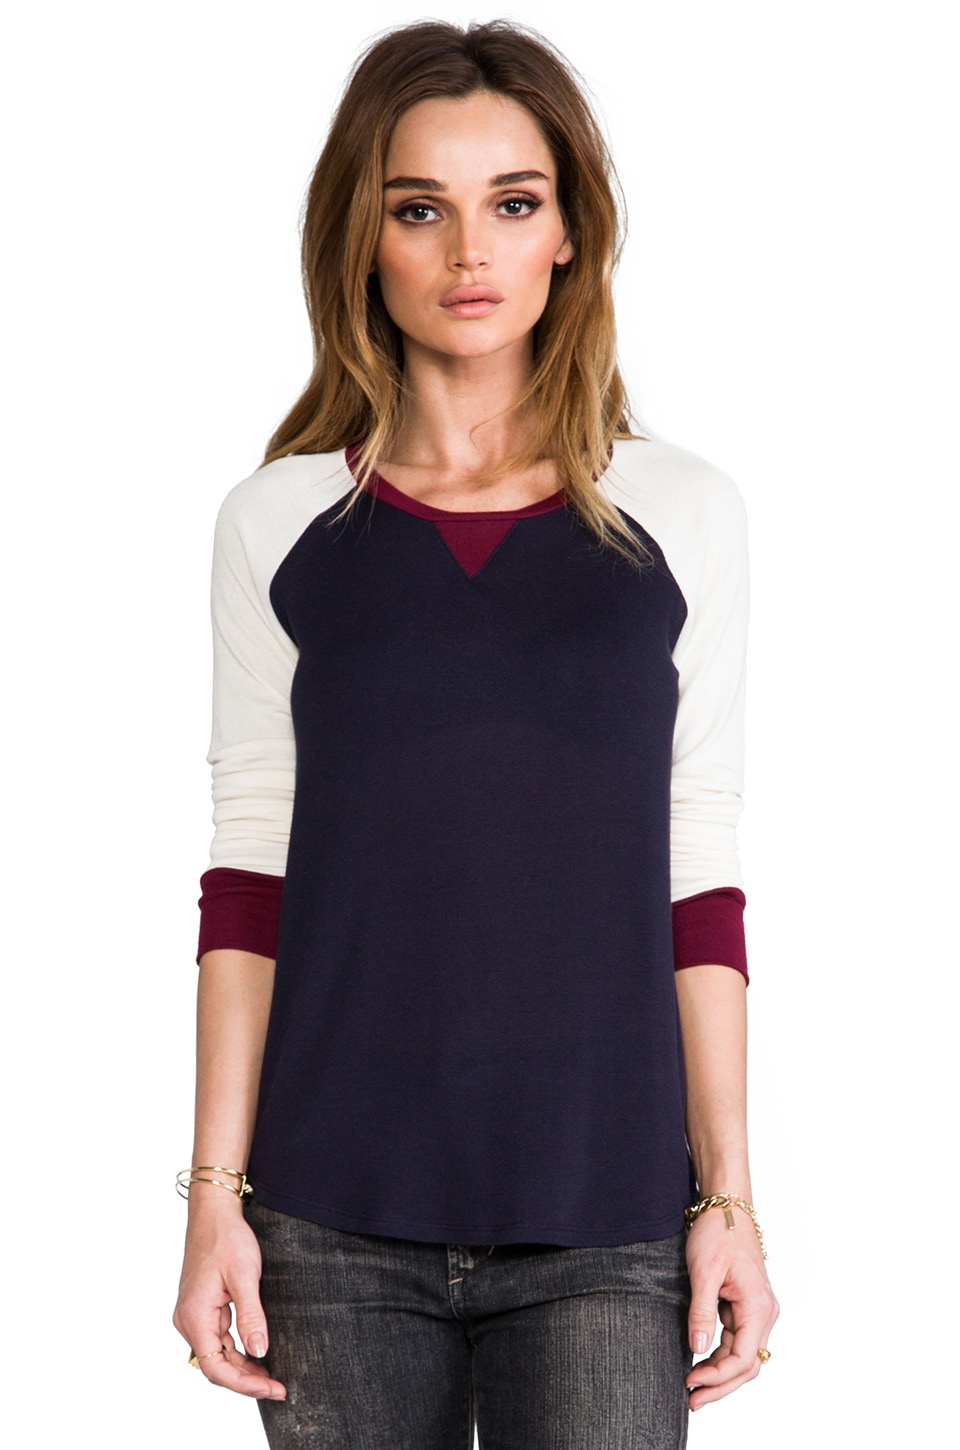 Whetherly Colorblock Jade Baseball Tee en Navy/Creme/Merlot